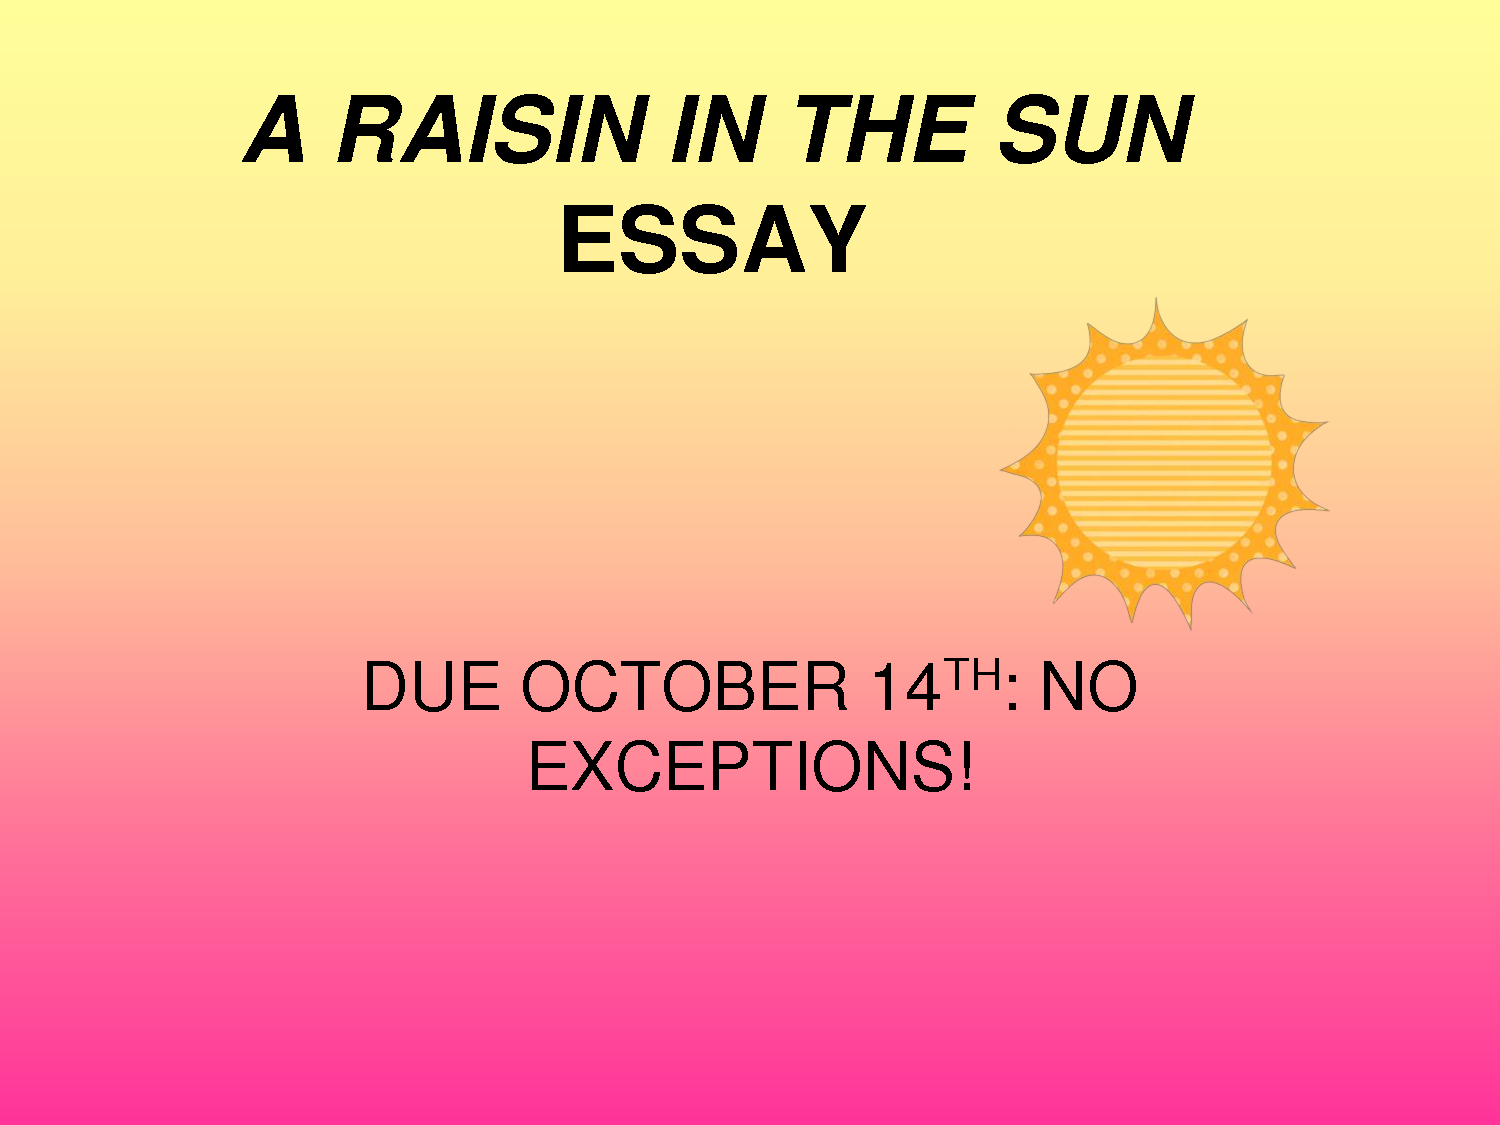 a raisin in the sun essay essay introductory sentence essay hope ...